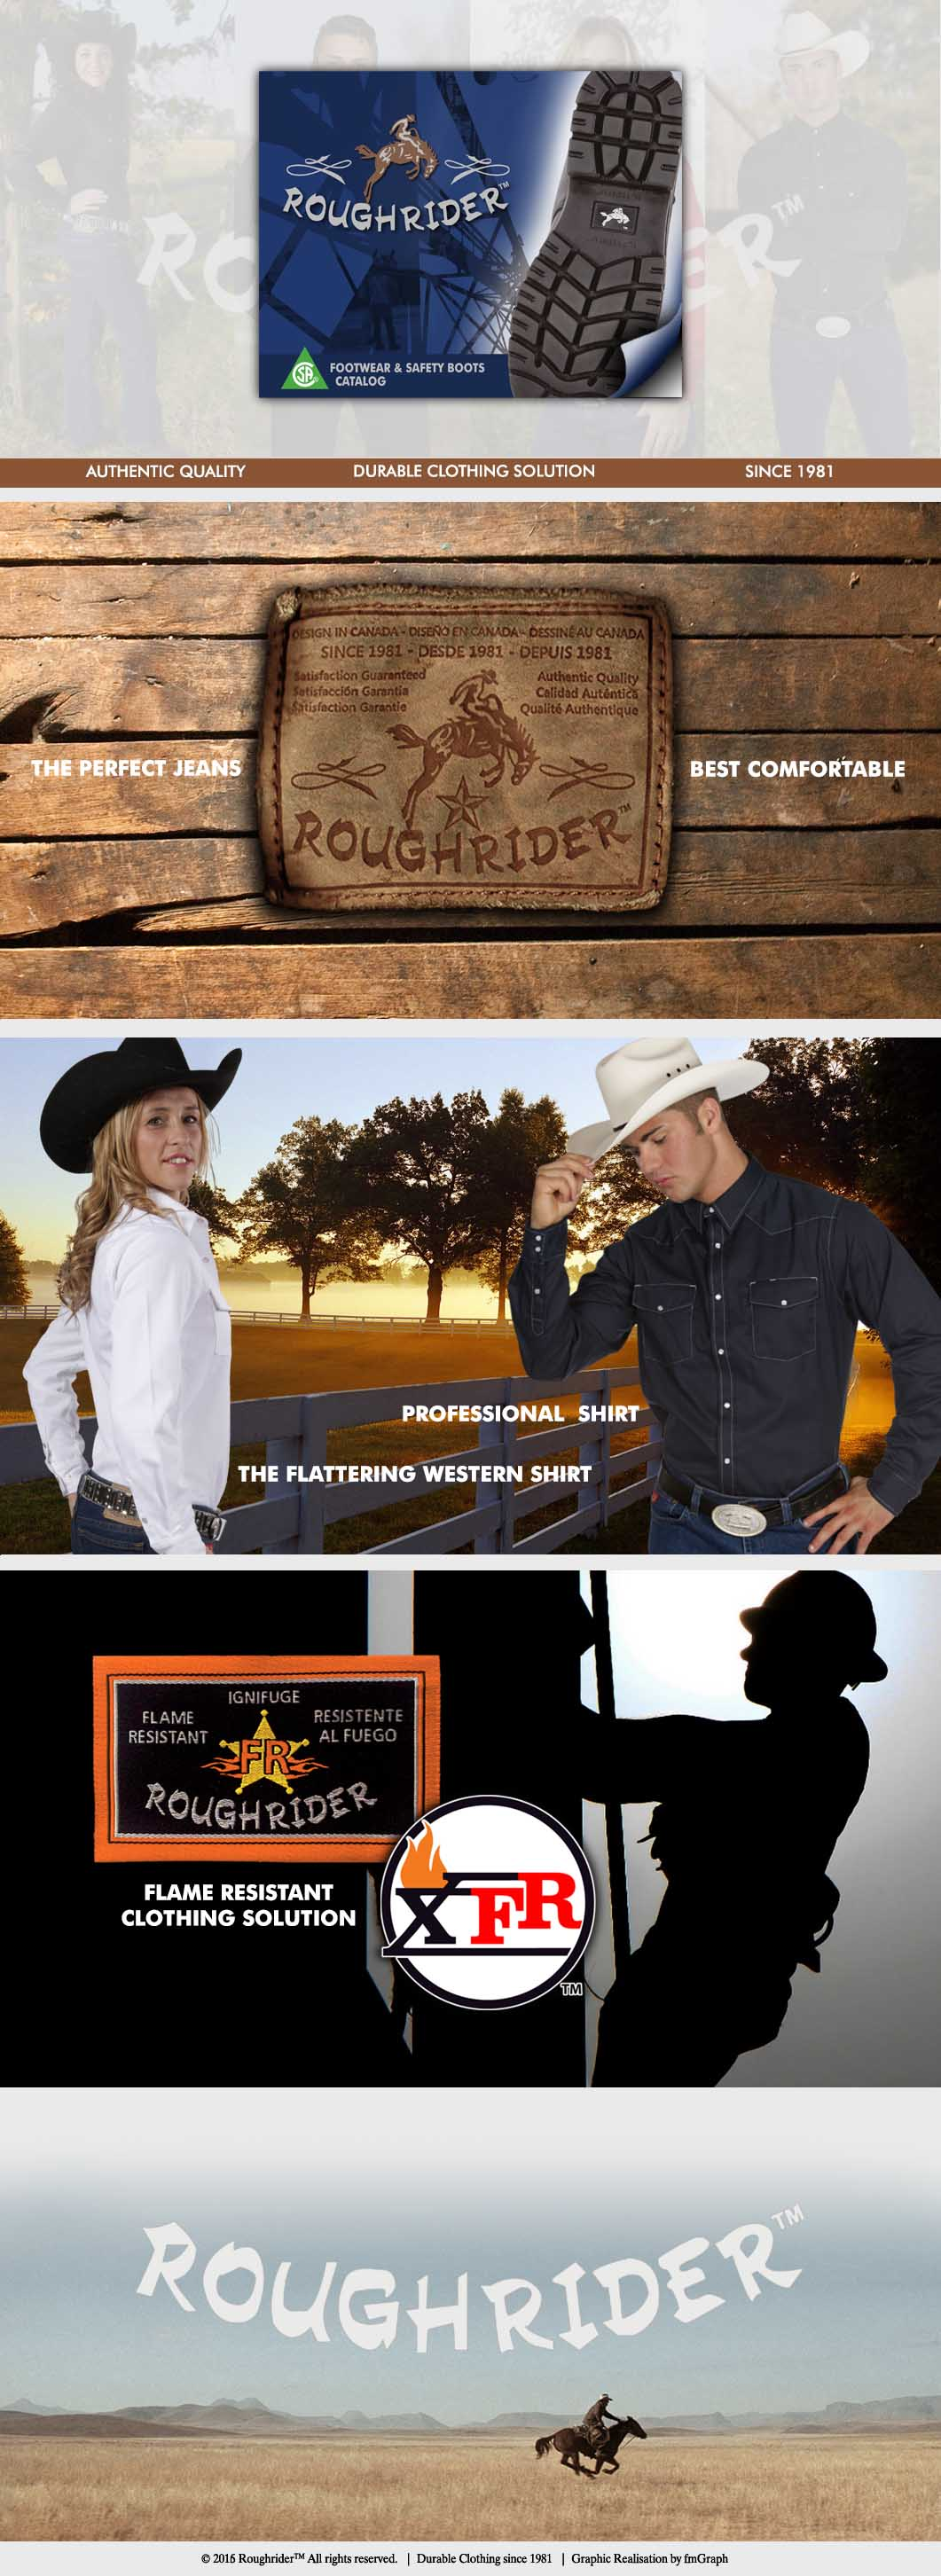 Workwear Roughrider Products